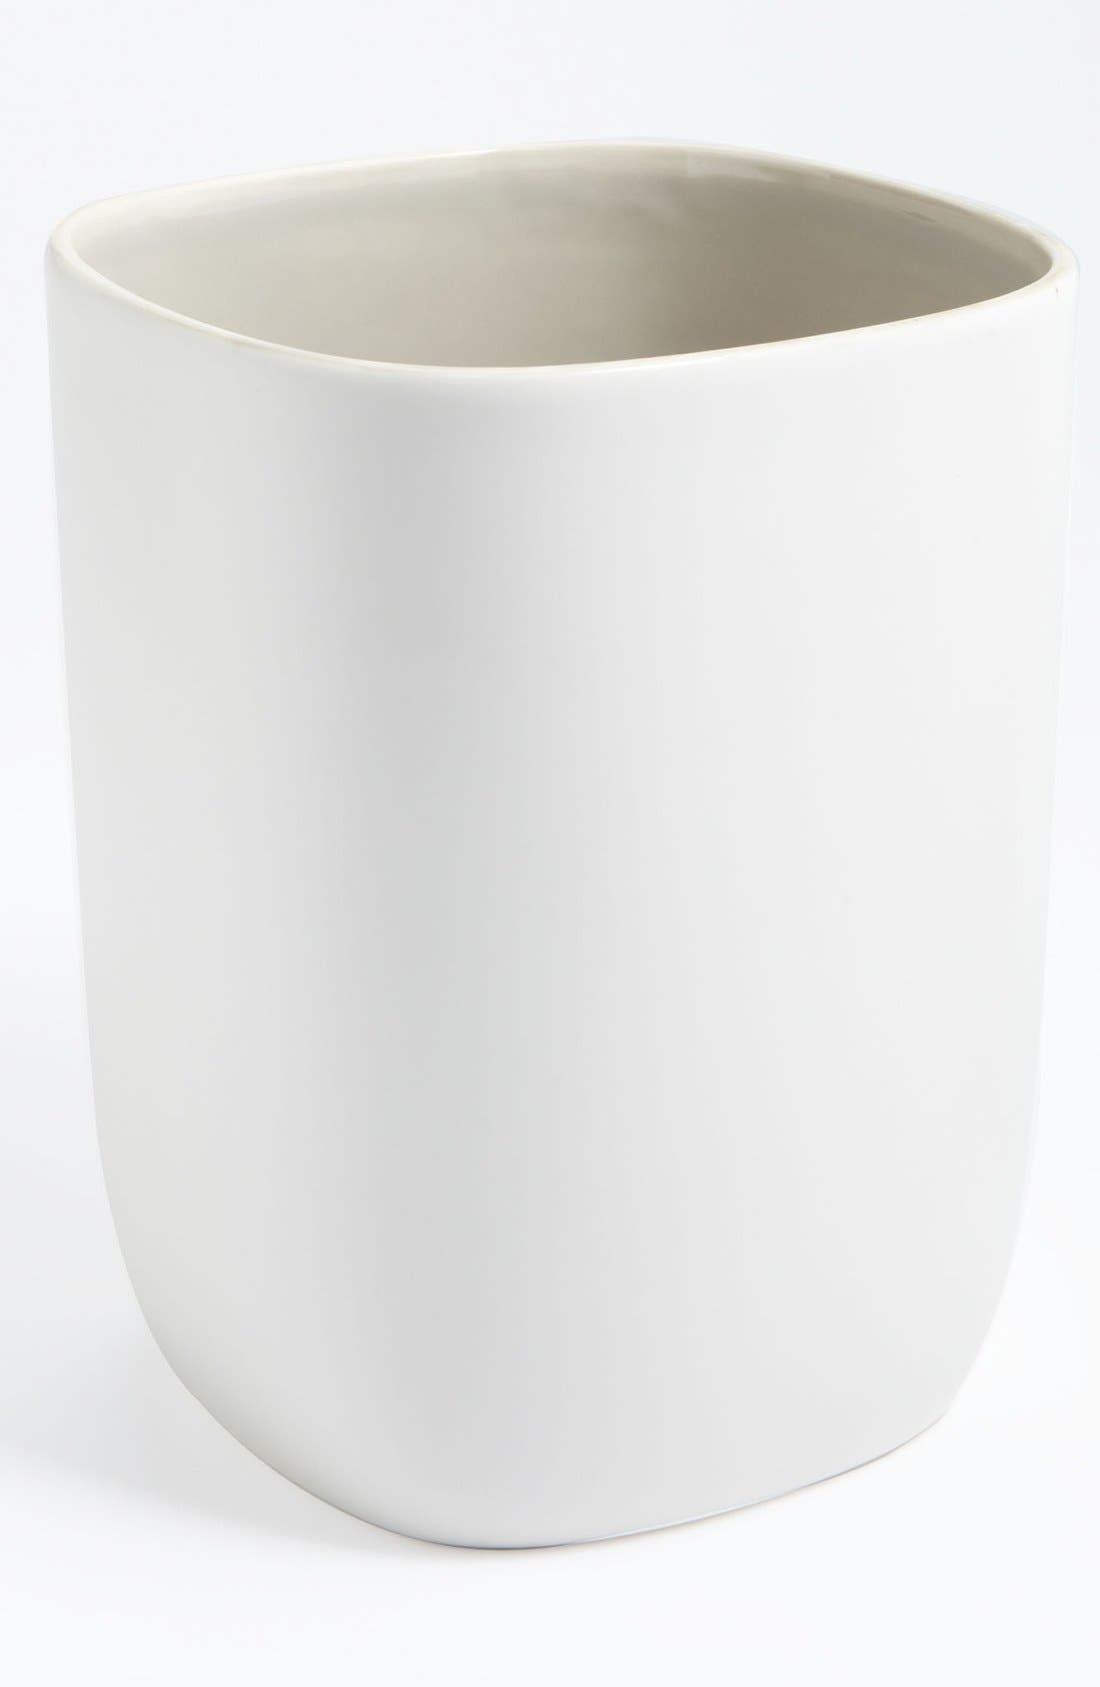 Main Image - Waterworks Studio 'Modern' Ceramic Wastebasket (Online Only)